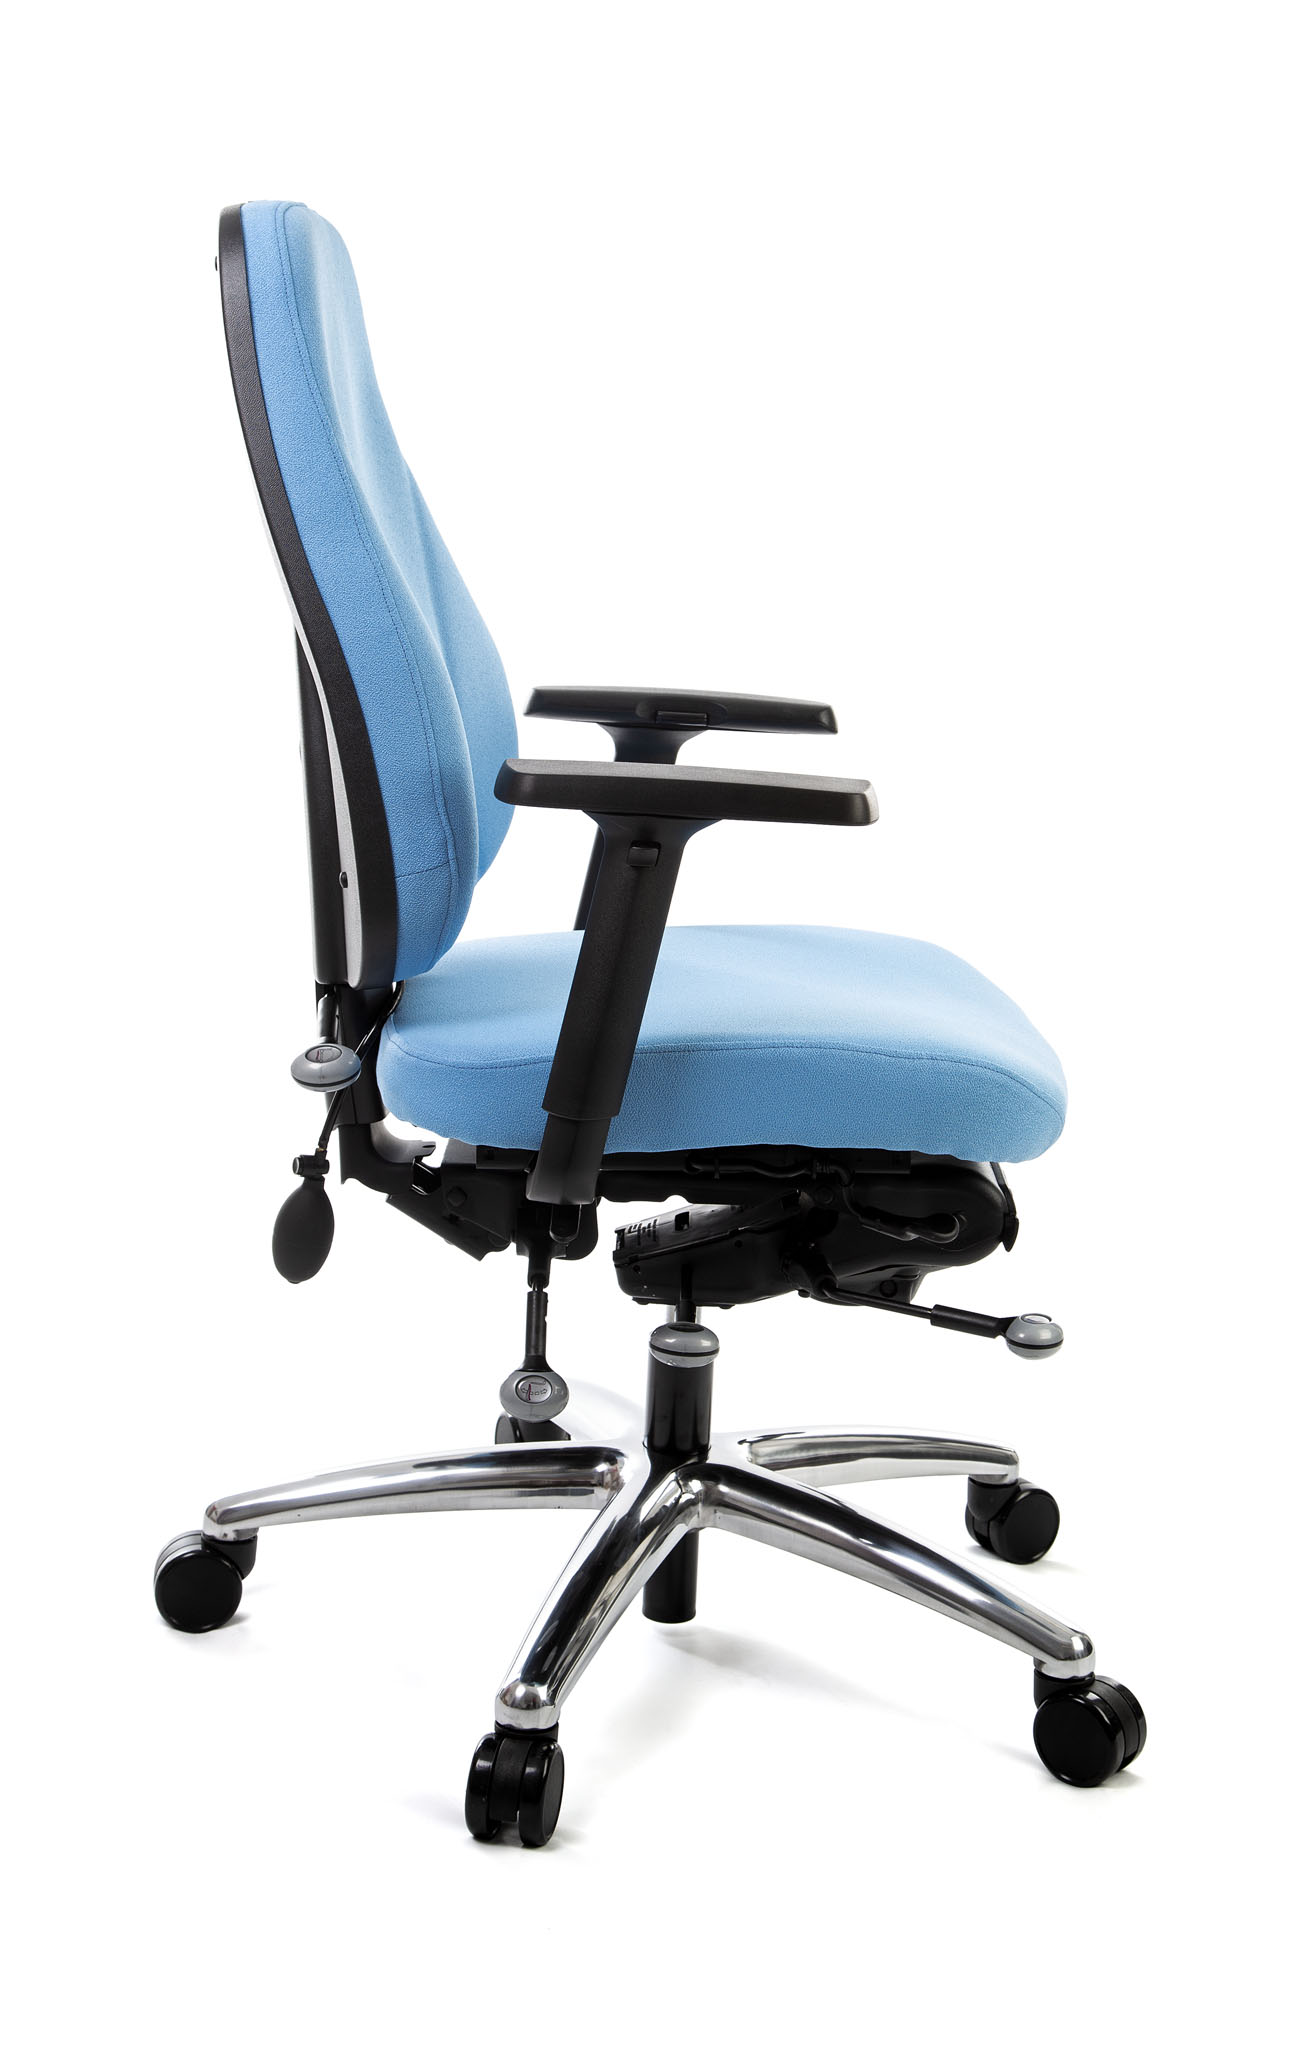 Opera 20 6 Ergonomic Chair Ergonomic Seating Solutions